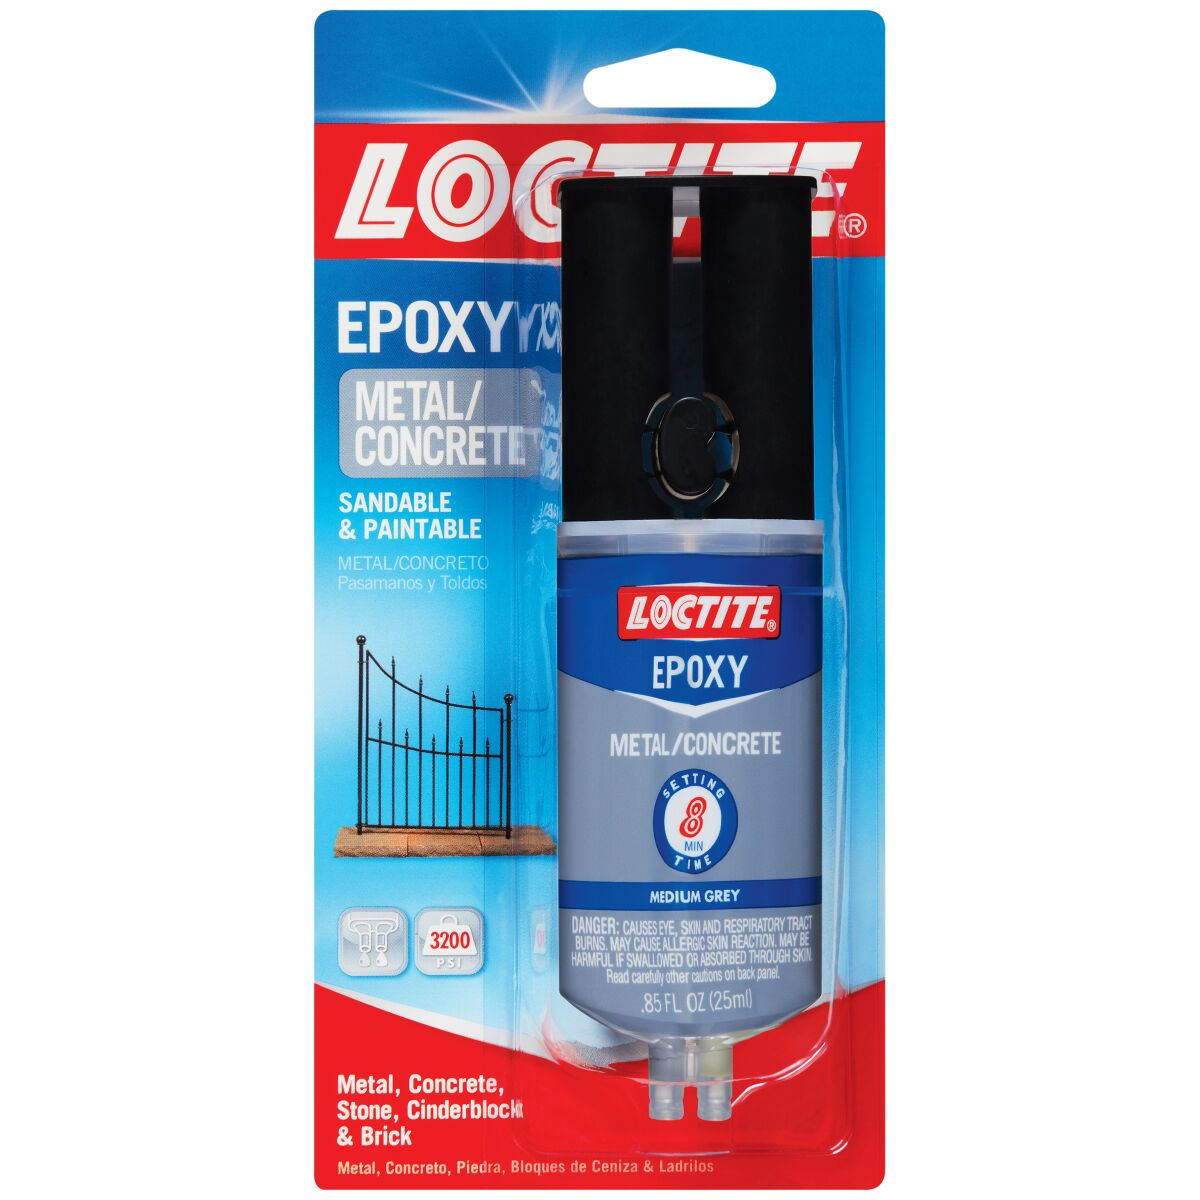 Loctite 25mL Epoxy Metal & Concrete Syringe